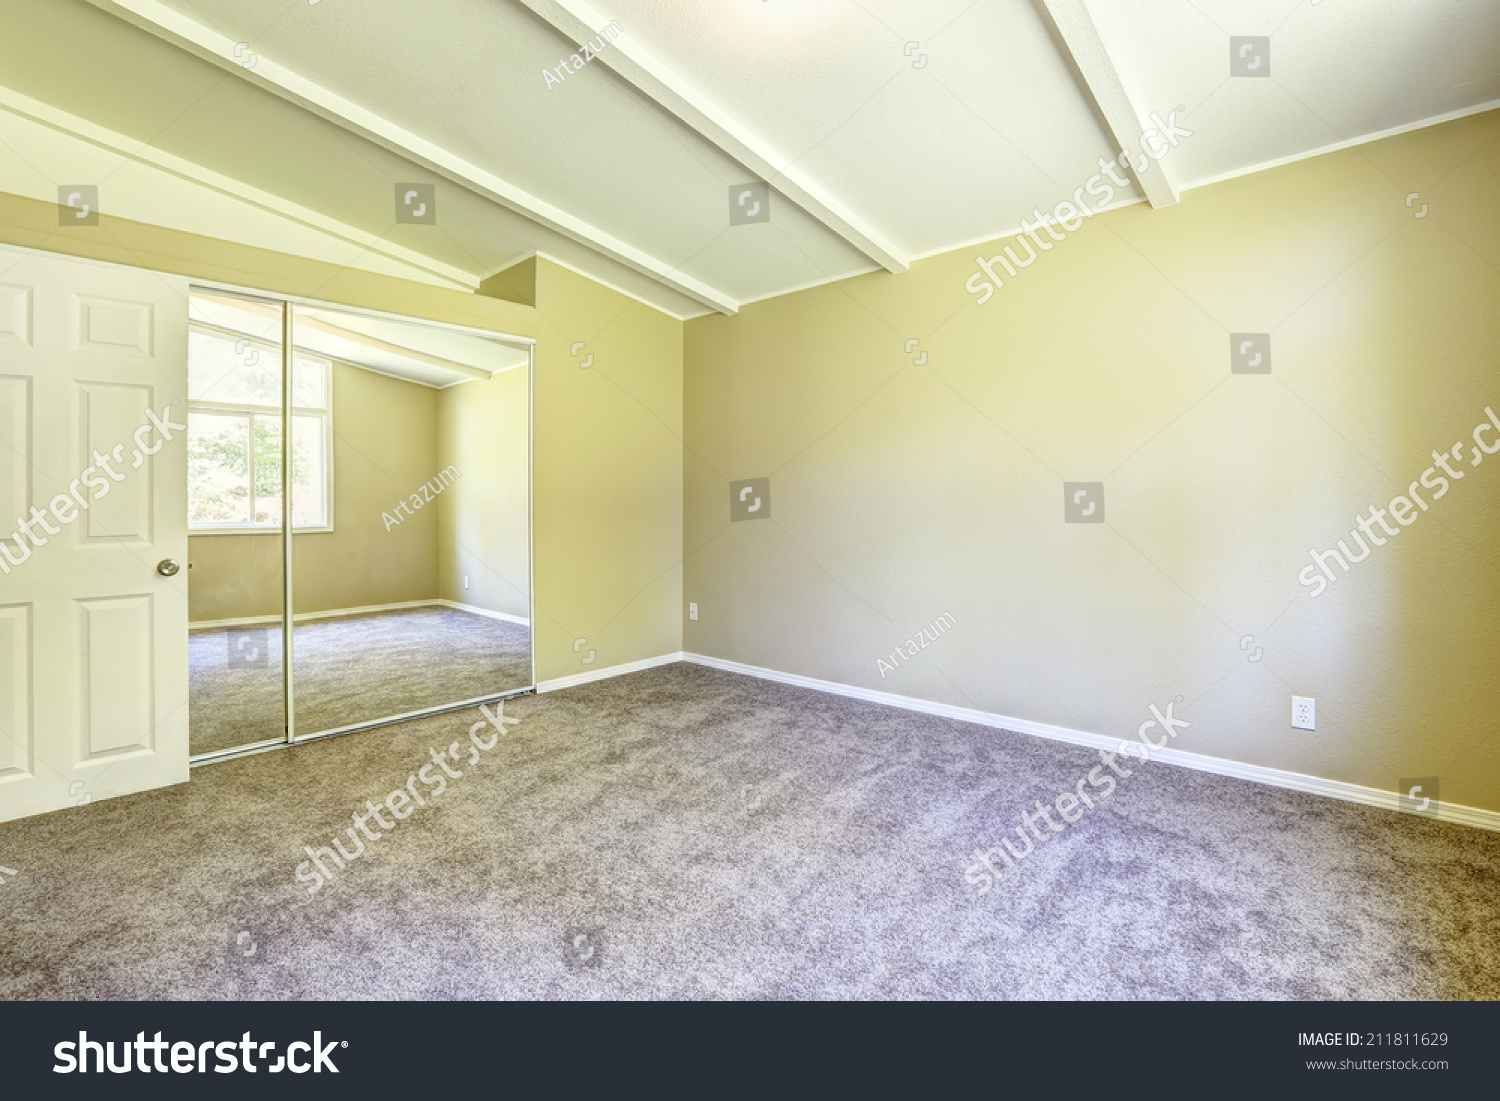 Pale purple contrast wall in empty room with carpet floor. Northwest ...